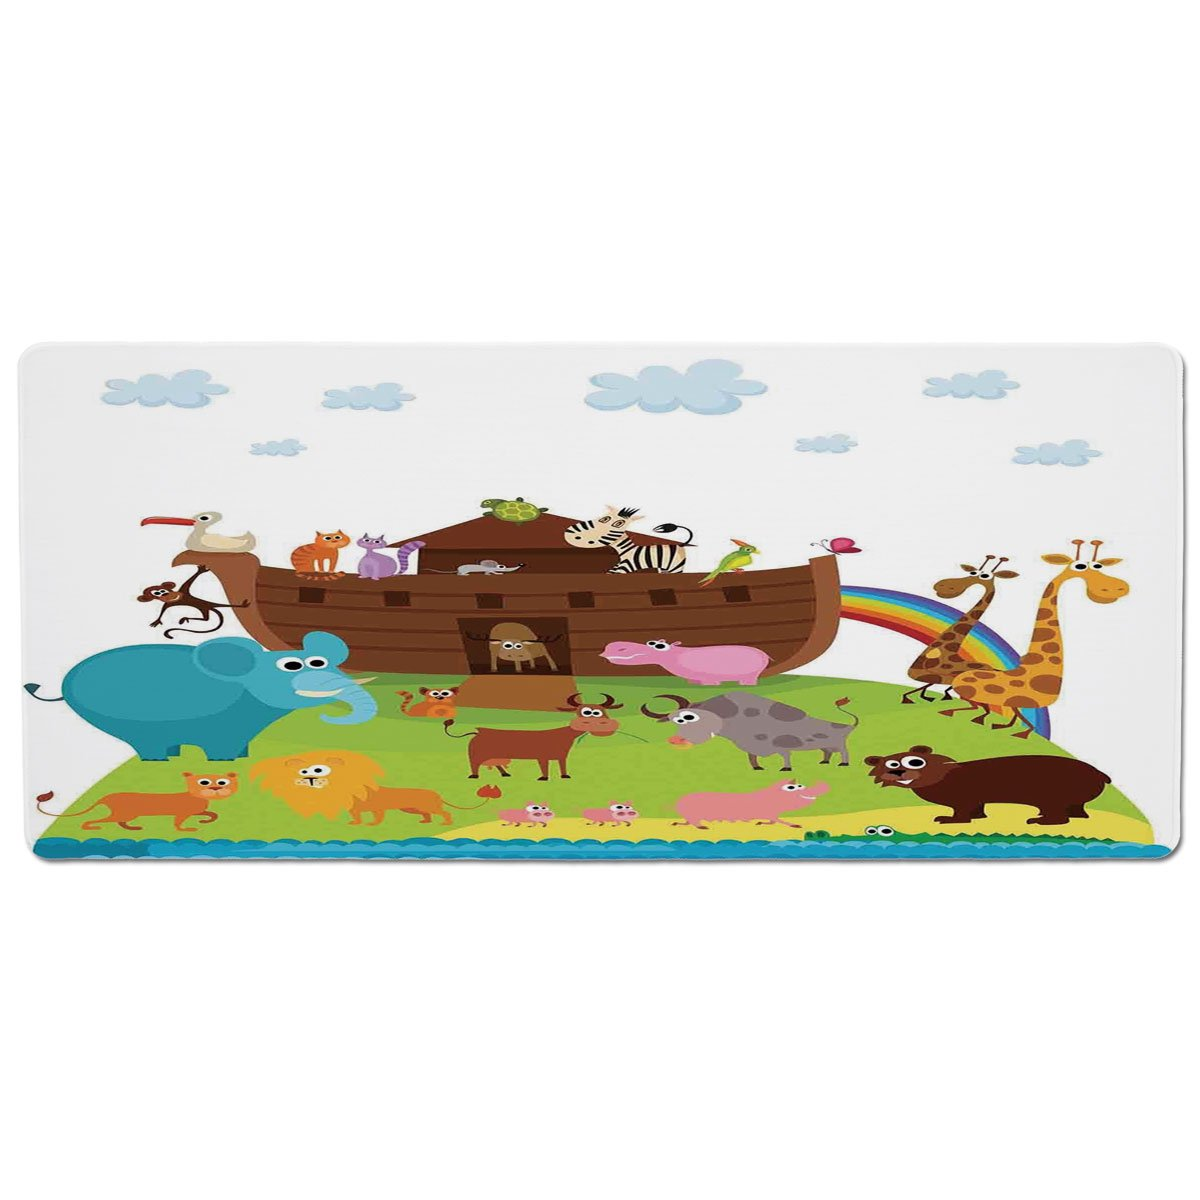 35.4\ iPrint Pet Mat for Food and Water,Noahs Ark,Various Safe Animals Two of Every Kind Boarding Noahs Ark Clip Art Design Print,Multicolor,Rectangle Non-Slip Rubber Mat for Dogs and Cats